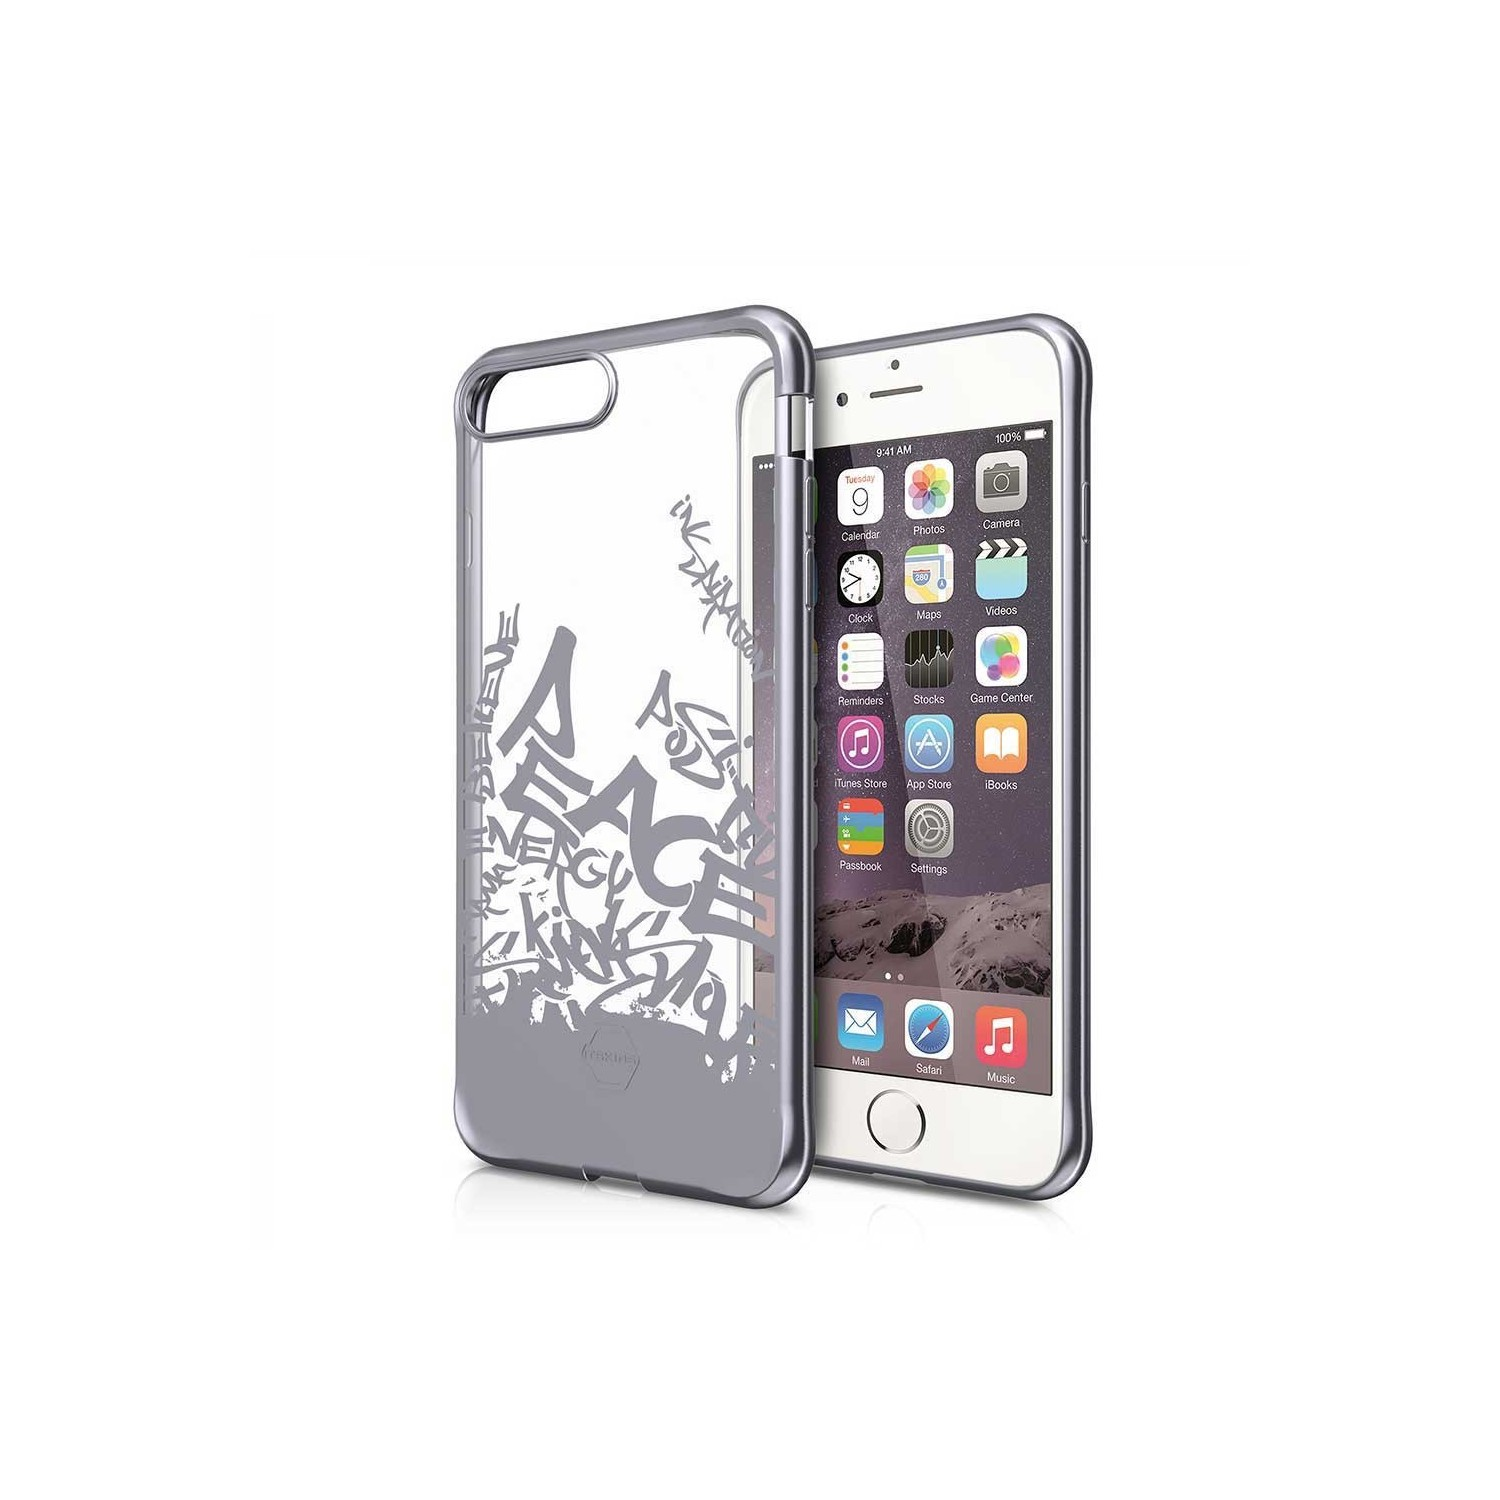 Case - ITSKINS Artgel case for iPhone 8 / 7 - Clear Space Gray